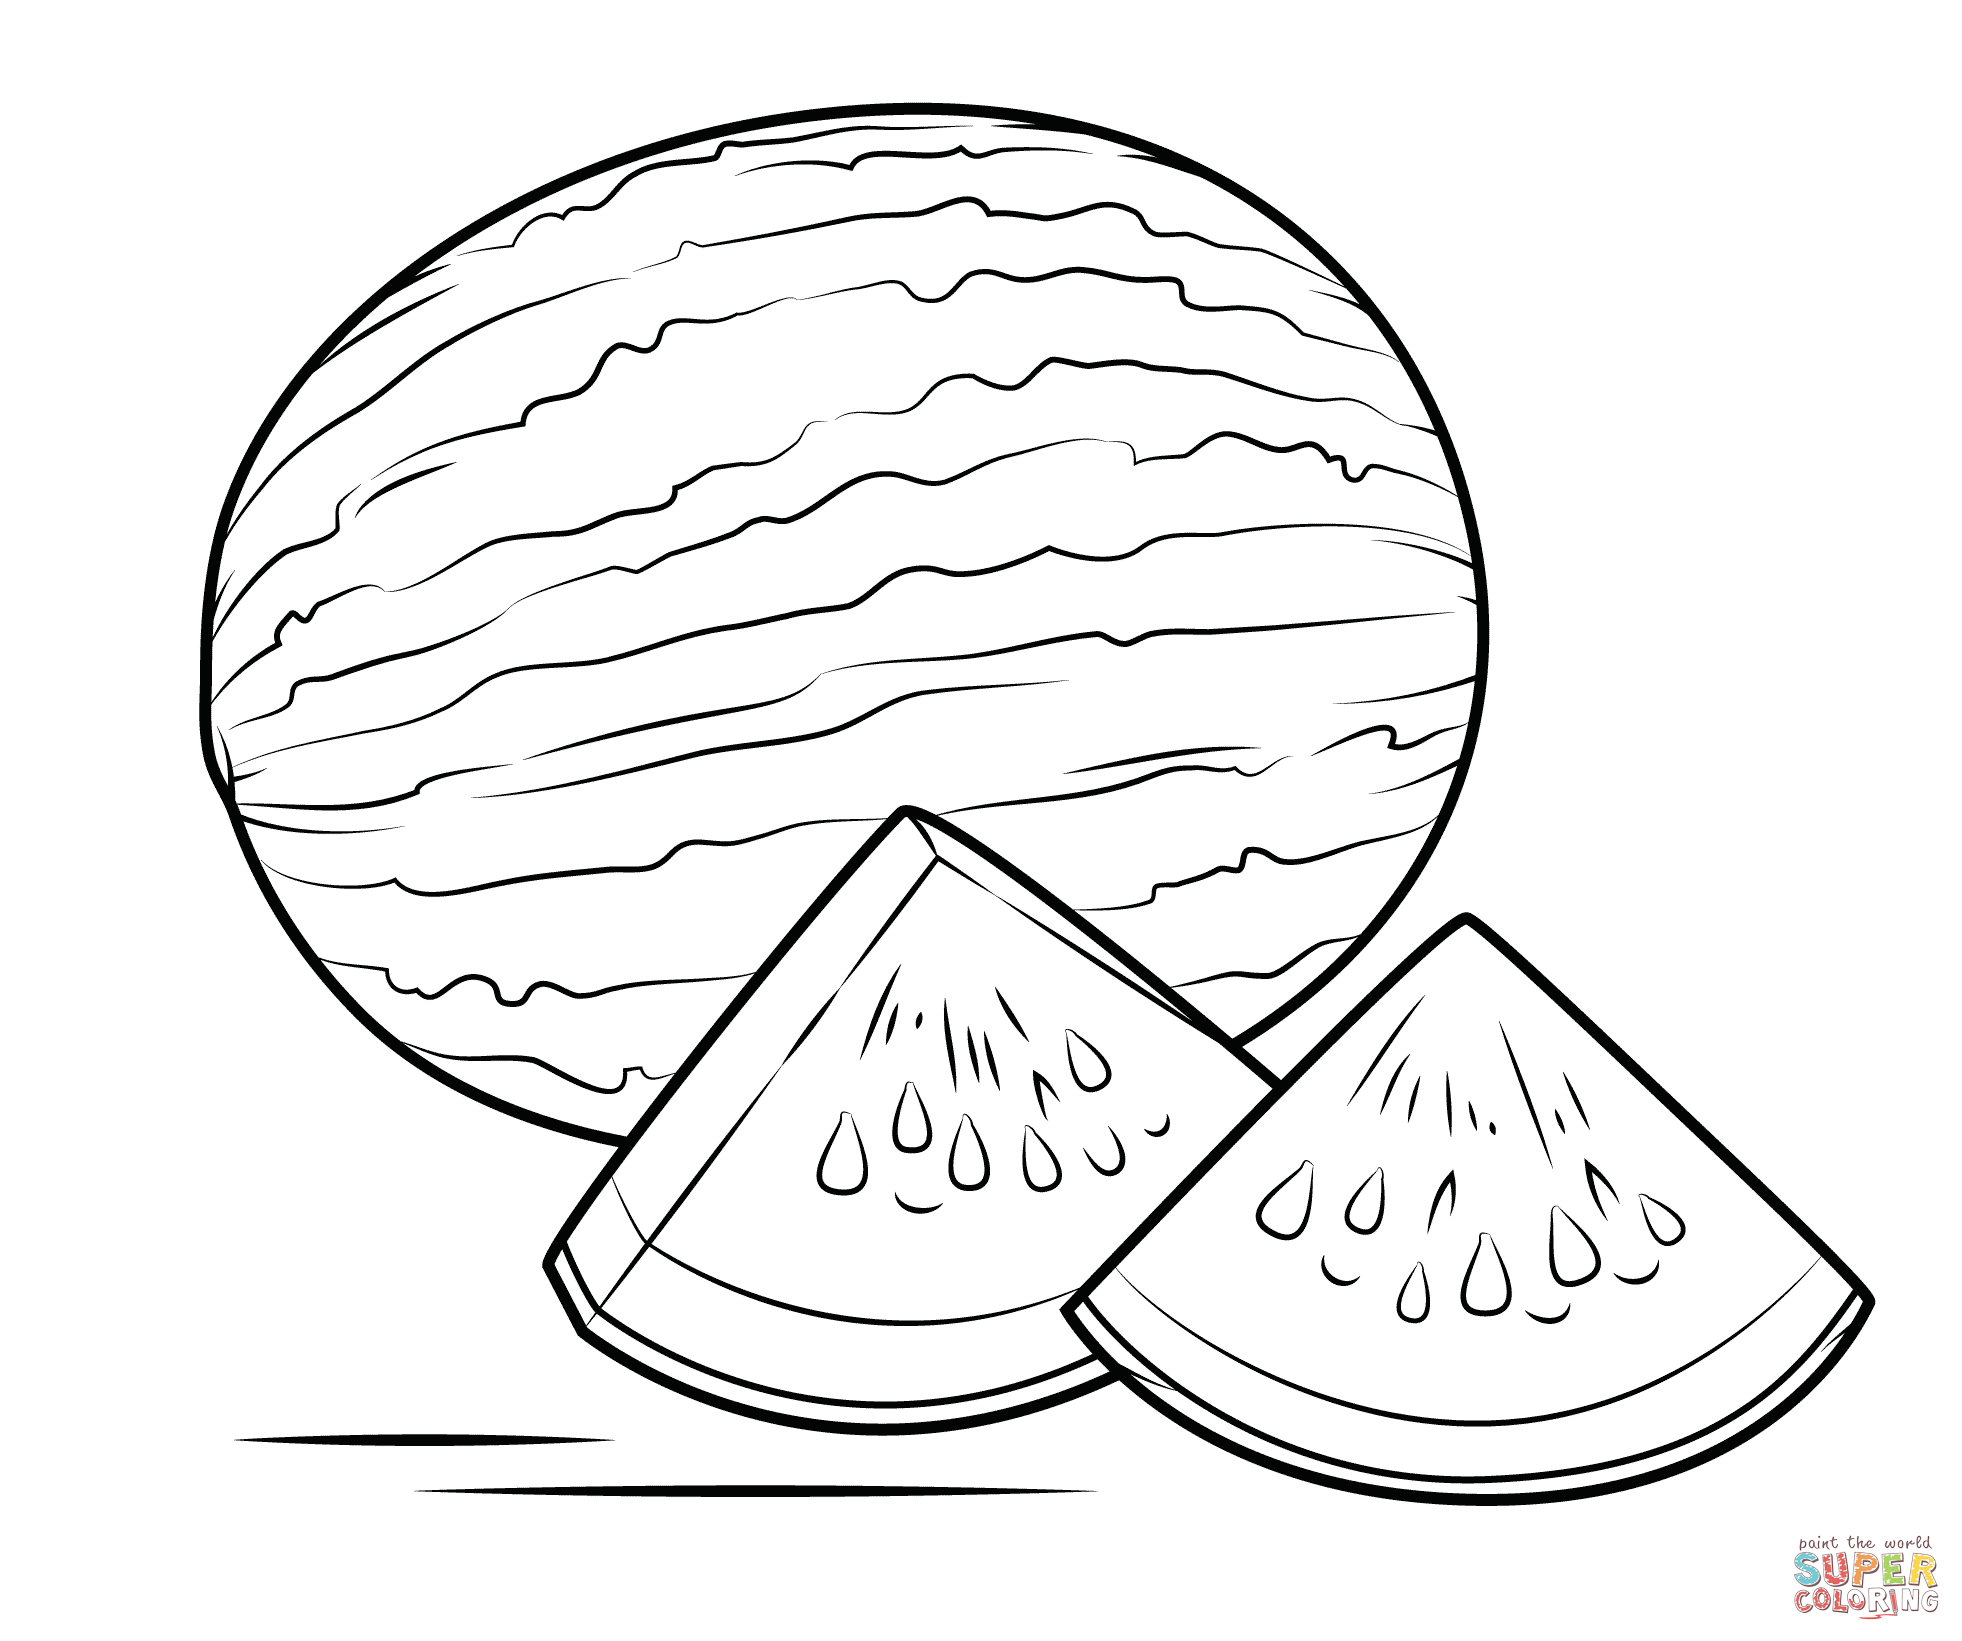 watermelon for coloring watermelon coloring page free printable coloring pages coloring watermelon for